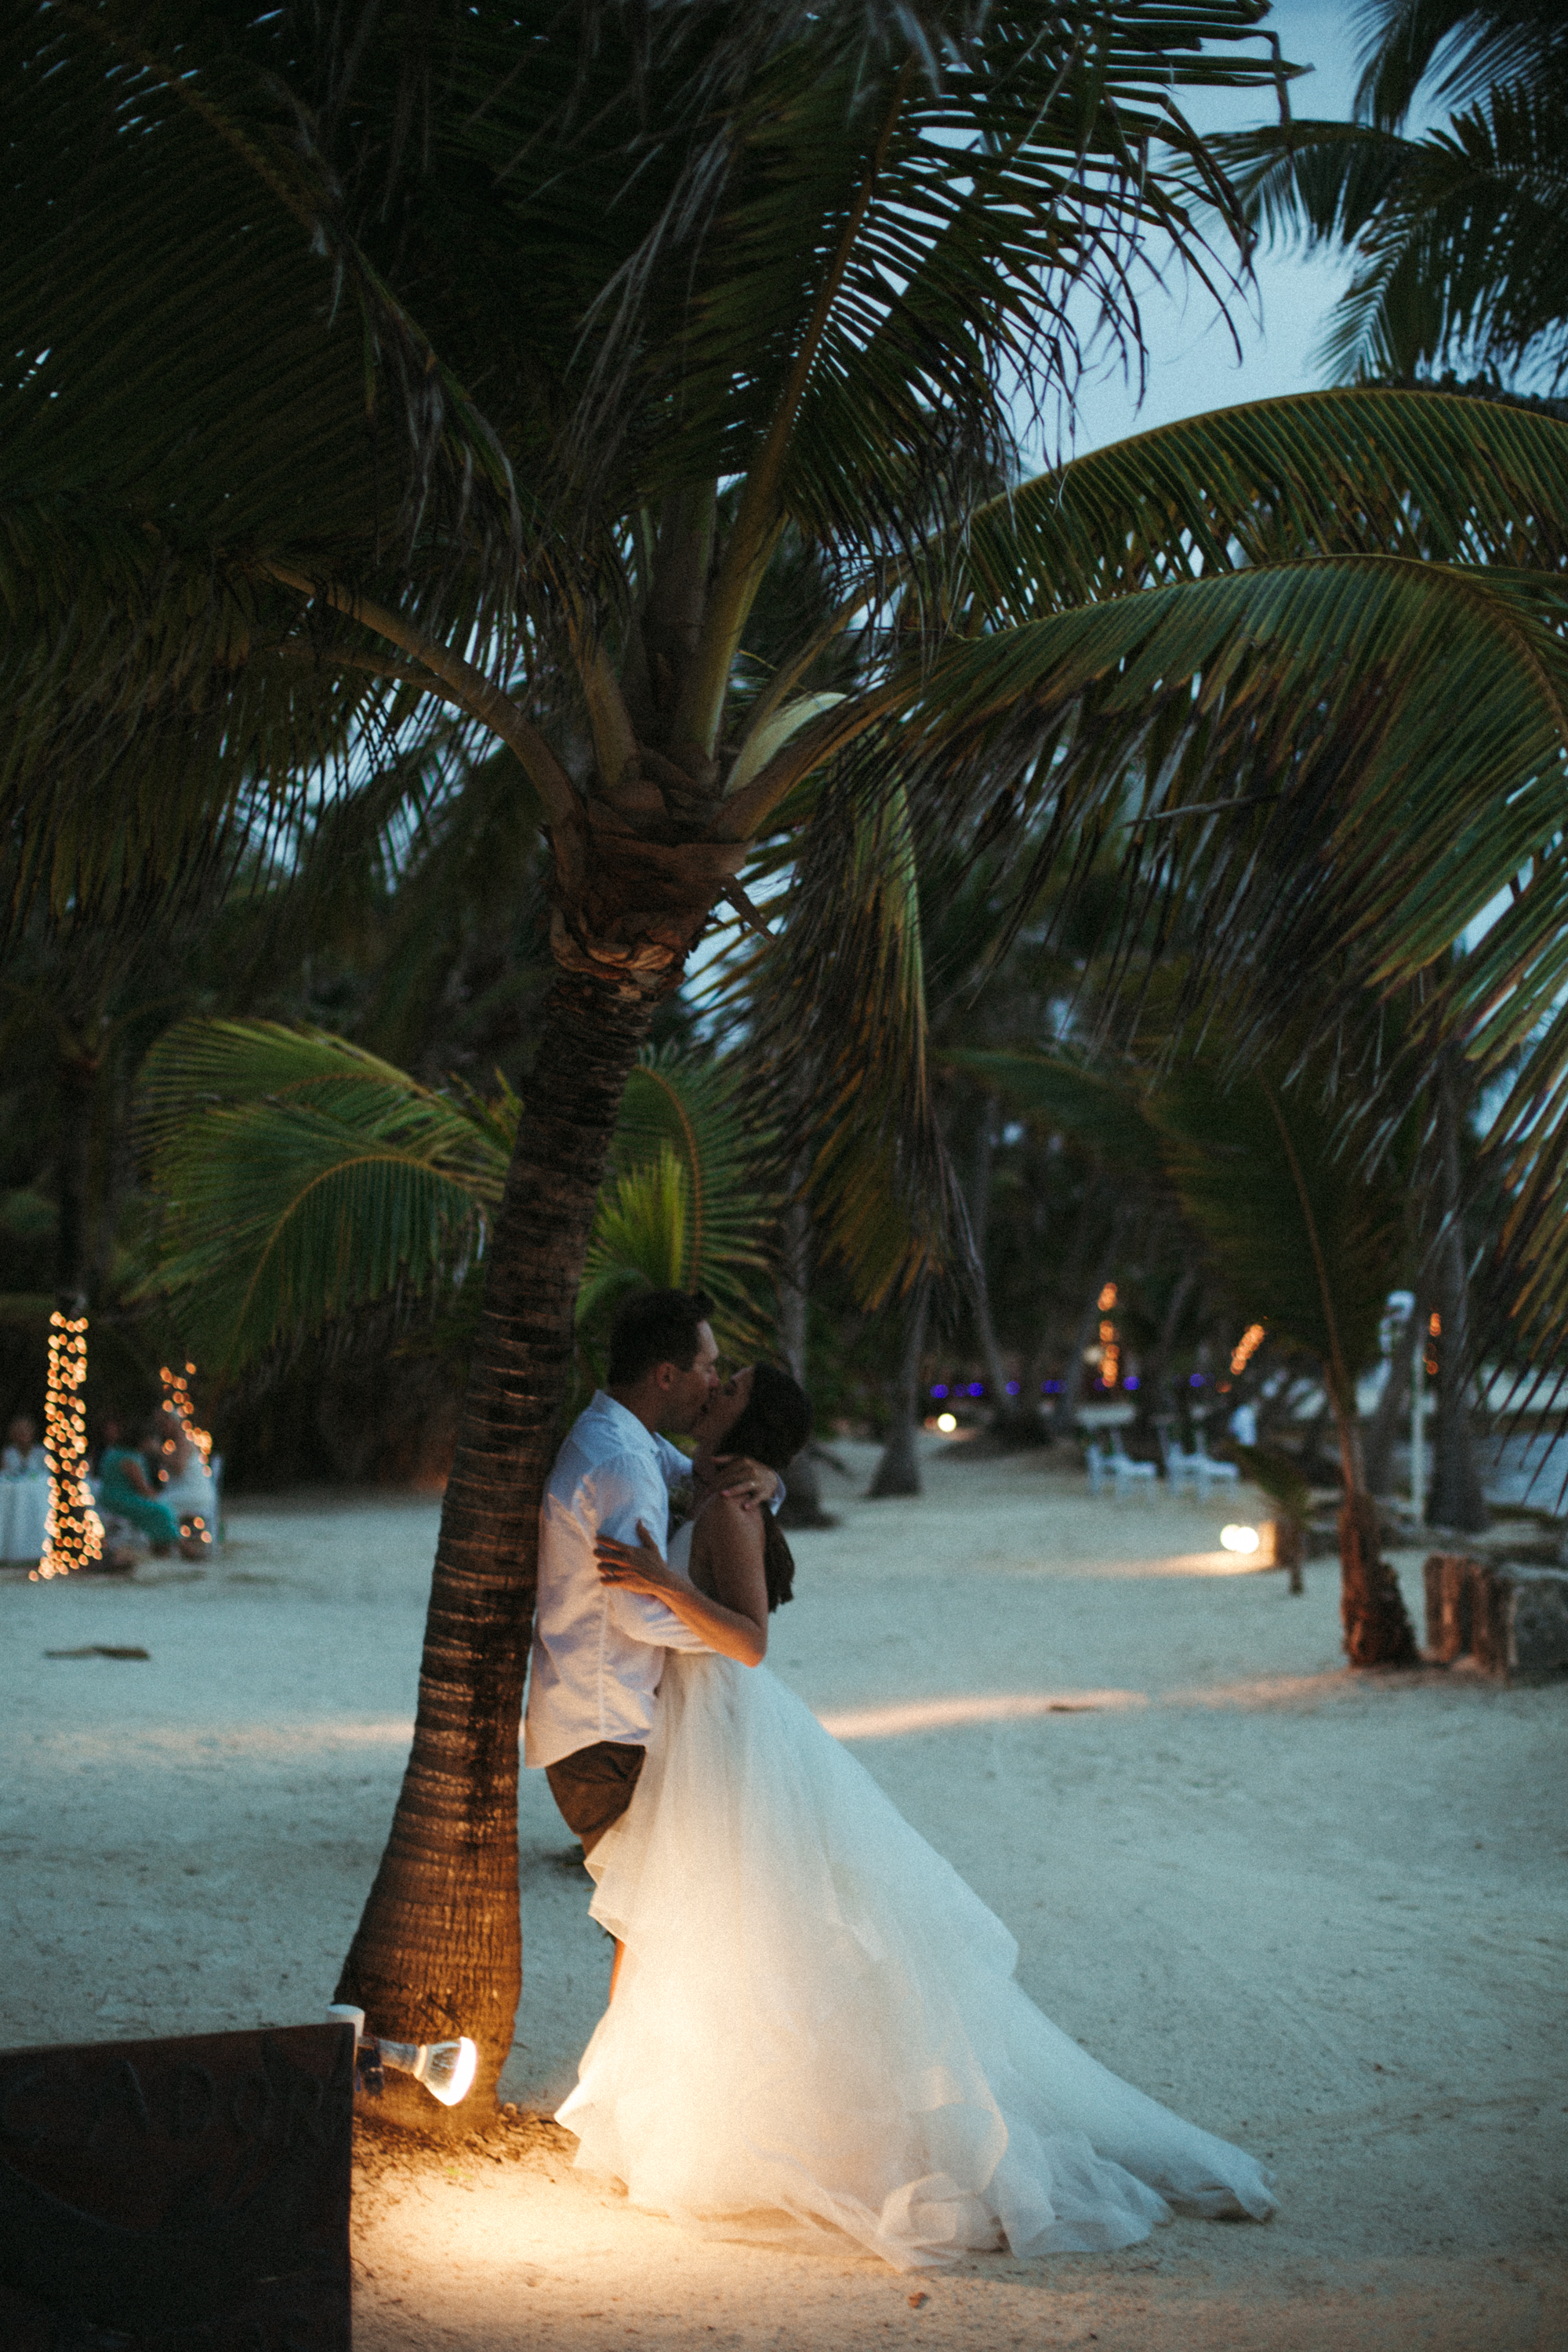 san-pescador-belize-wedding-christinemariephoto-j-k-149.jpg